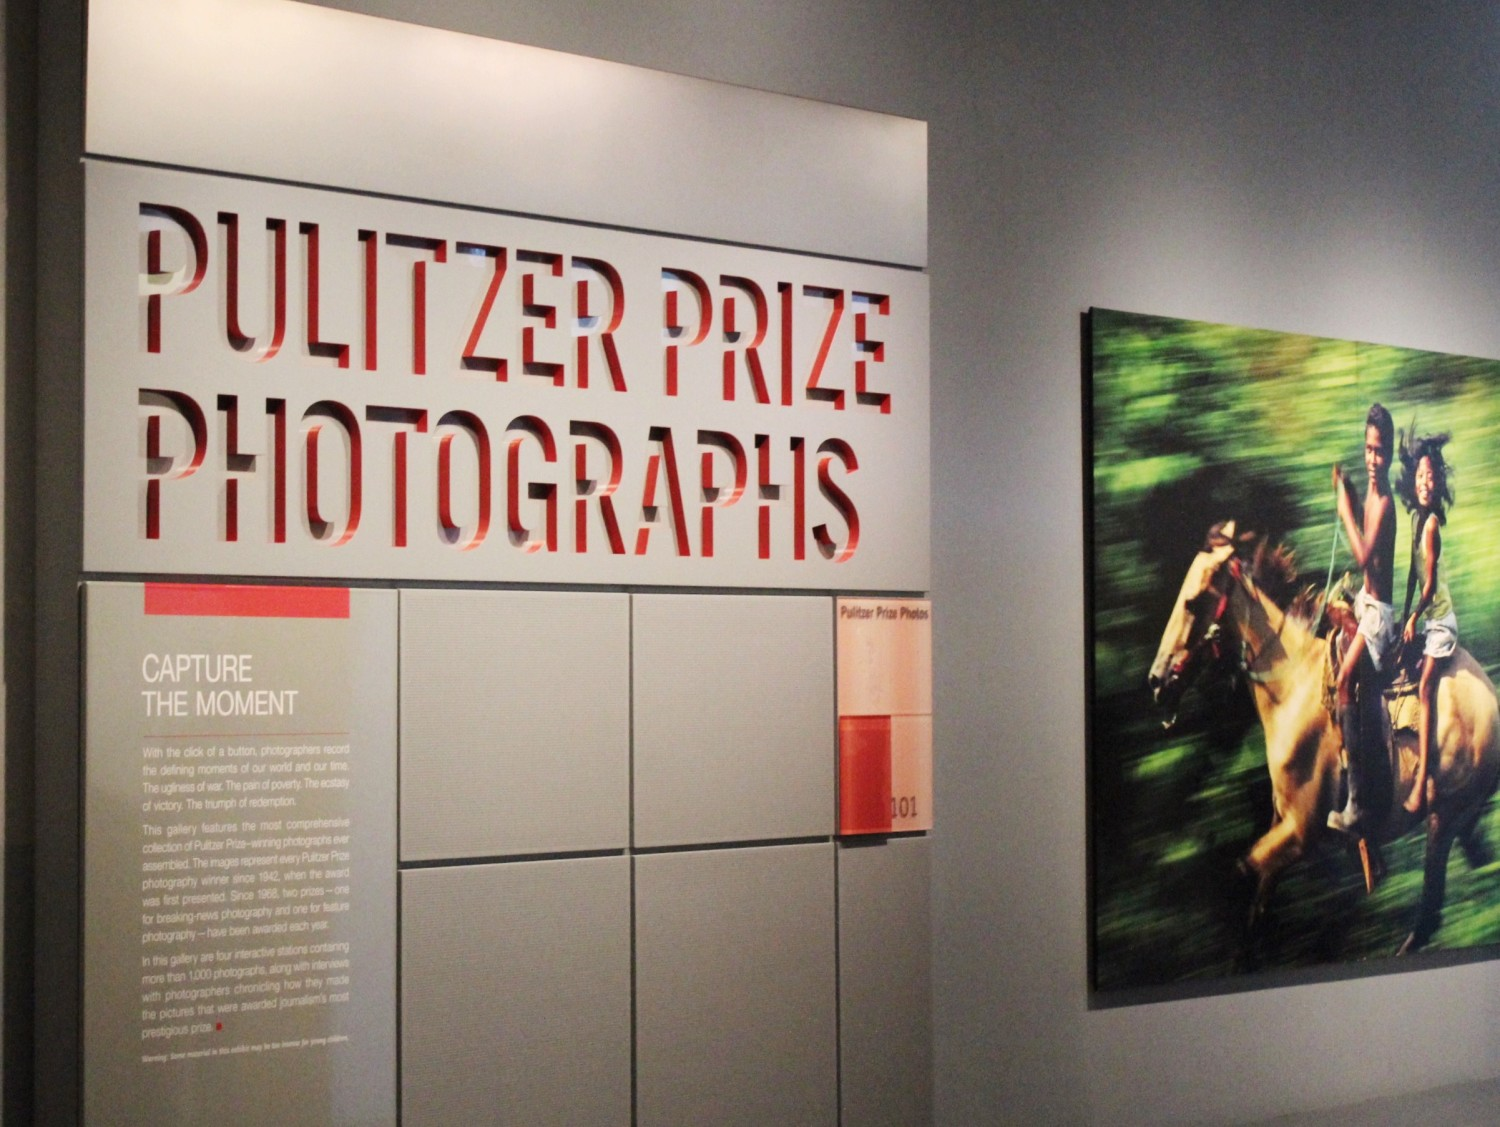 Pulitzer Prize Photographs